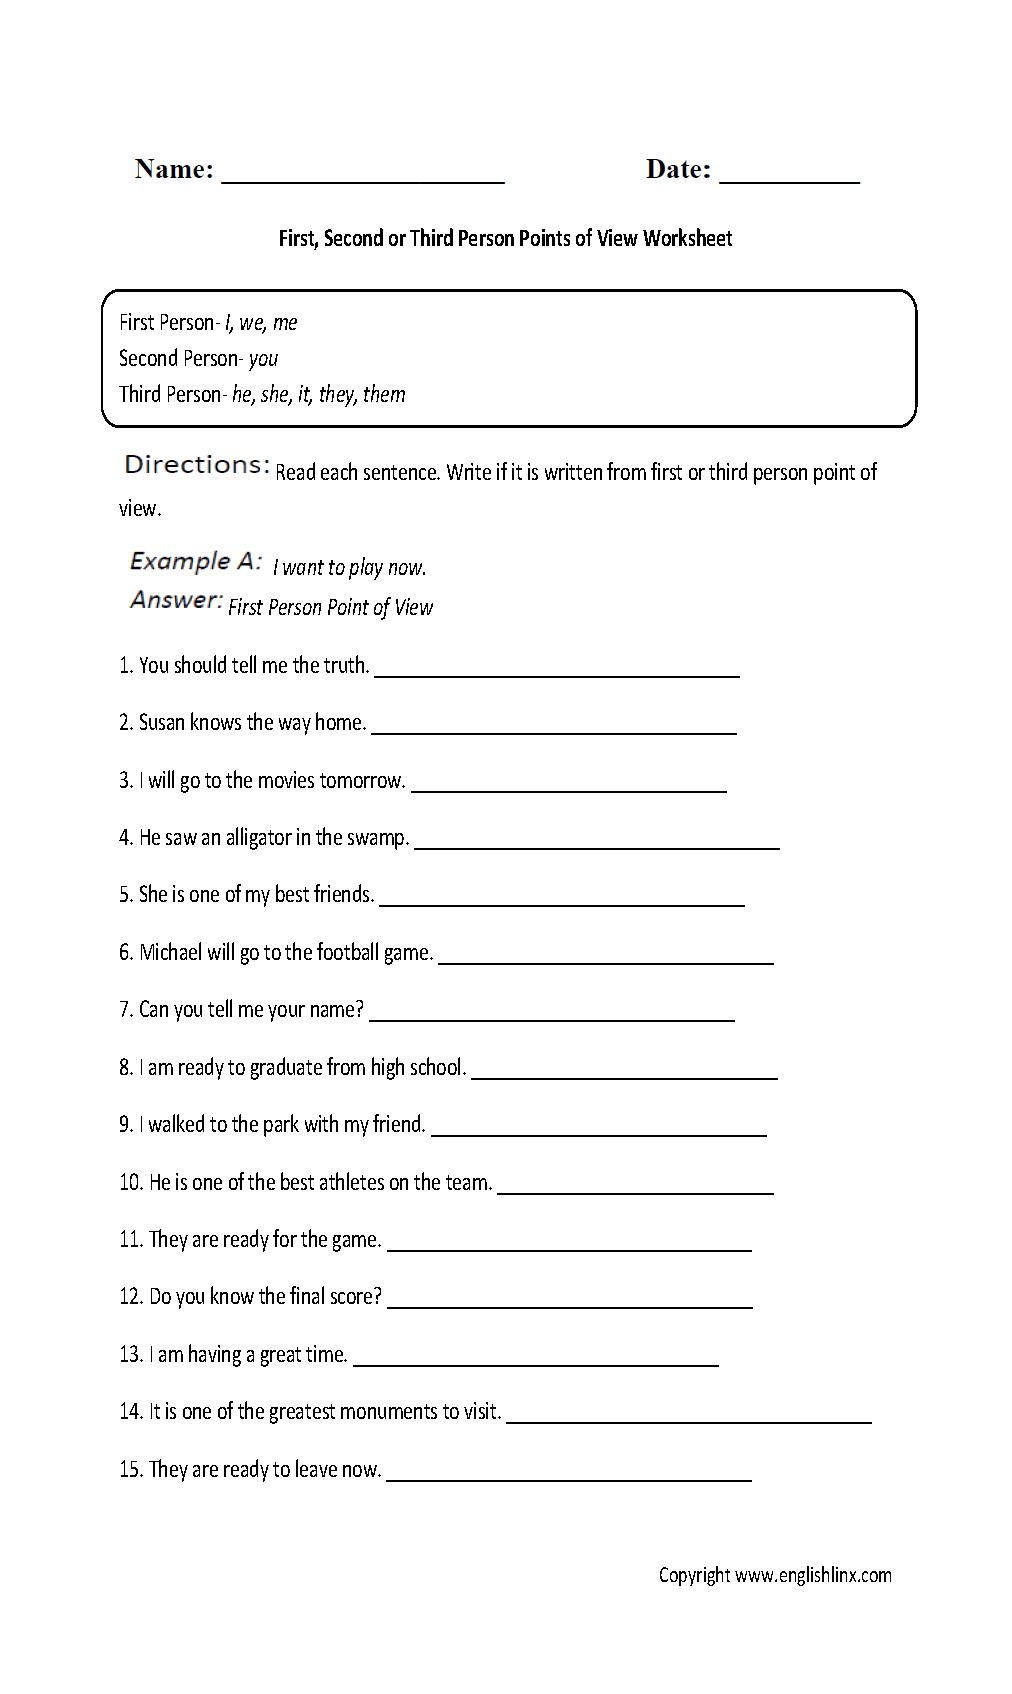 Weirdmailus  Pleasant Englishlinxcom  Point Of View Worksheets With Inspiring Point Of View Worksheet With Appealing Solar System Worksheets For Kids Also Long And Short Vowel Sounds Worksheets In Addition Math Worksheet Printables And System Of Equations Word Problems Worksheet Algebra  As Well As Pre K Sight Word Worksheets Additionally Th Grade Math Practice Worksheets From Englishlinxcom With Weirdmailus  Inspiring Englishlinxcom  Point Of View Worksheets With Appealing Point Of View Worksheet And Pleasant Solar System Worksheets For Kids Also Long And Short Vowel Sounds Worksheets In Addition Math Worksheet Printables From Englishlinxcom